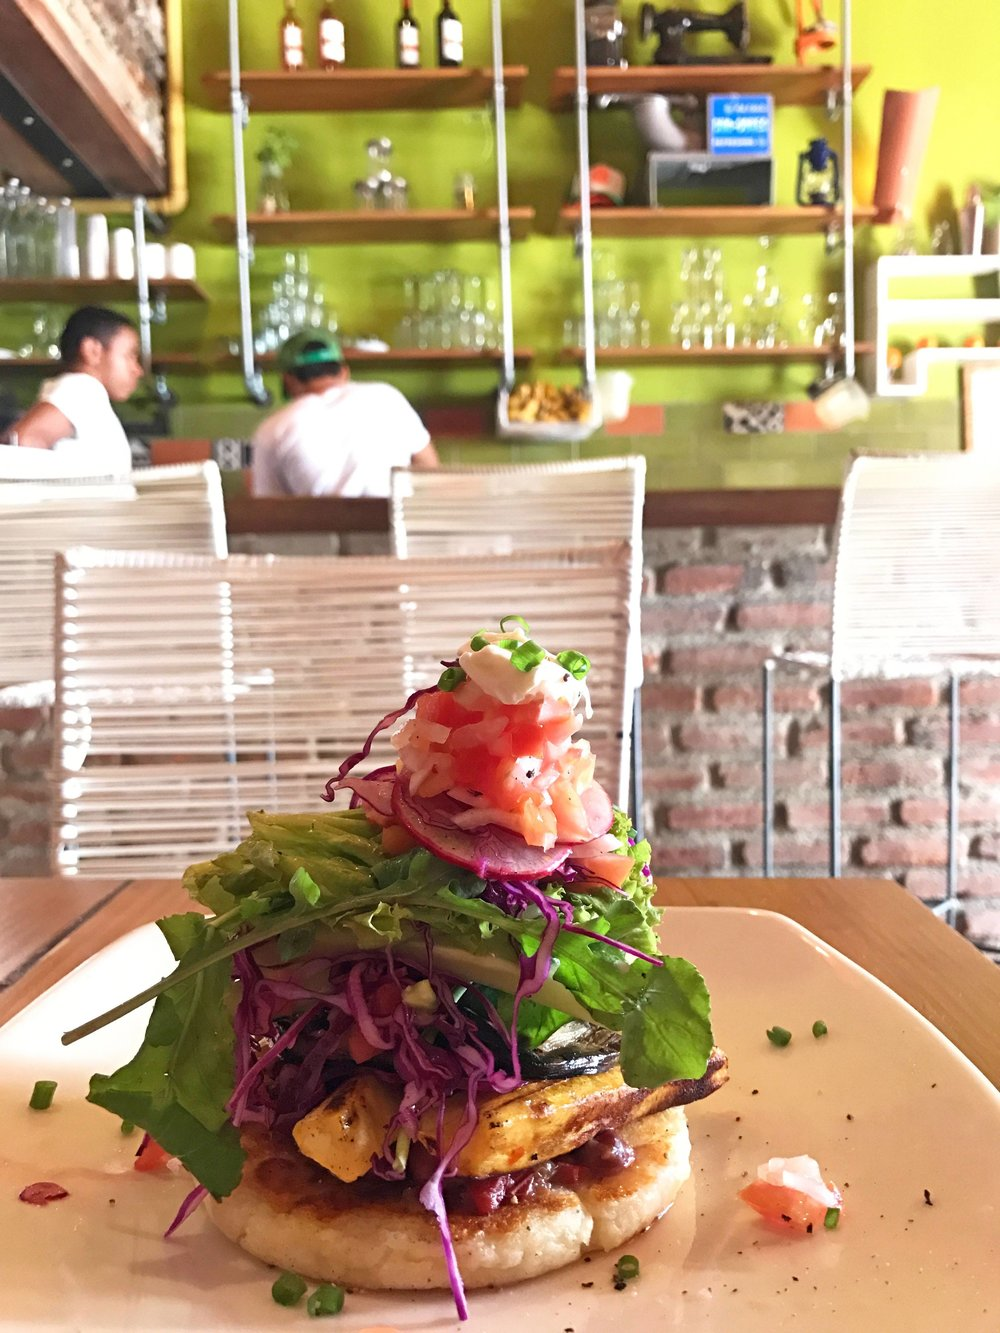 Loaded Arepa in Santa Marta, Colombia